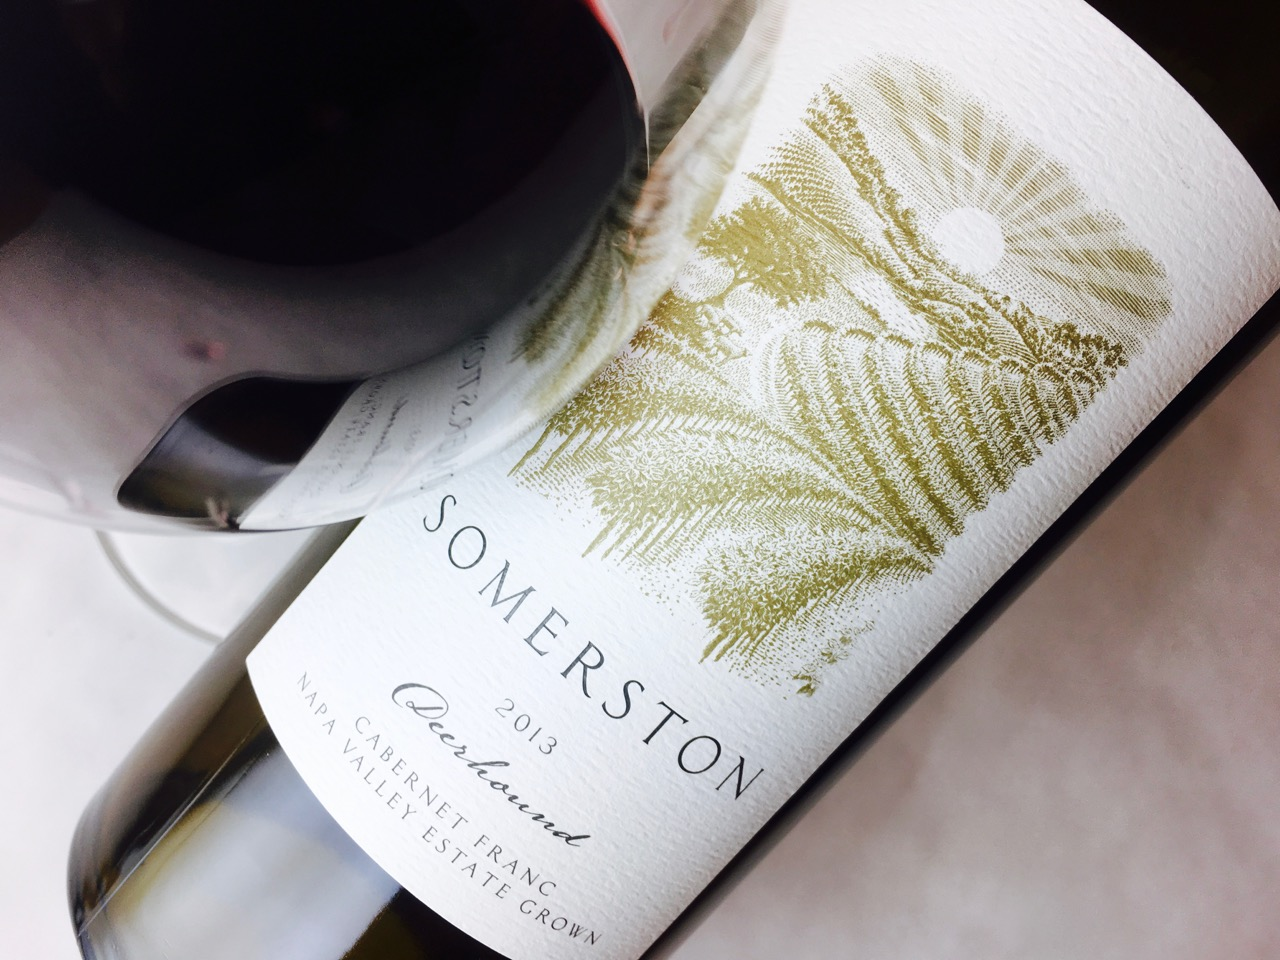 2013 Somerston Cabernet Franc Deerhound Napa Valley